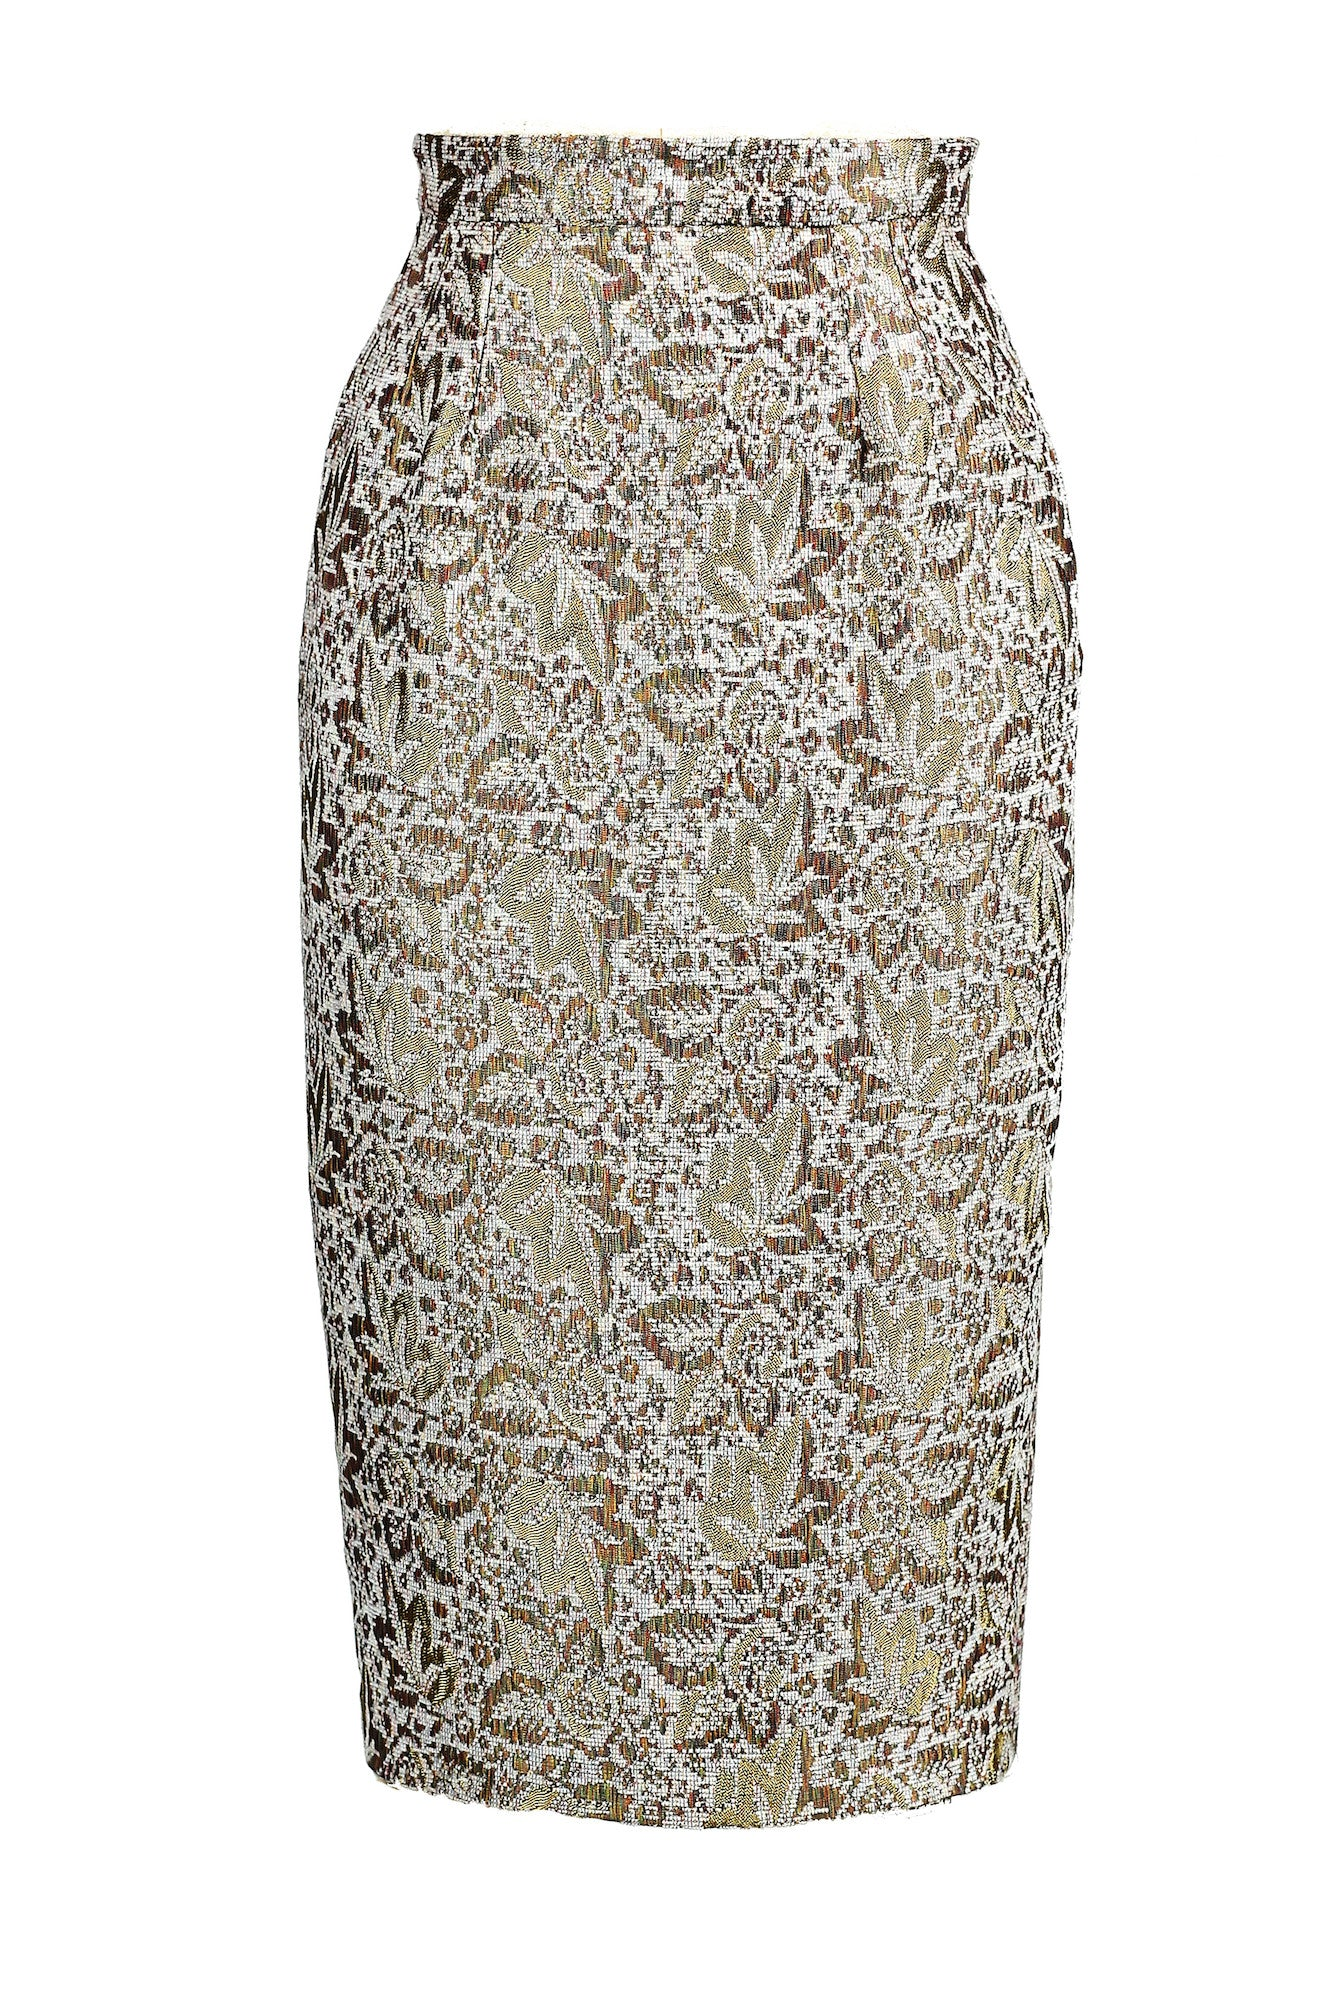 Textured High-waisted Pencil Skirt for All Seasons - Steve Guthrie - 1